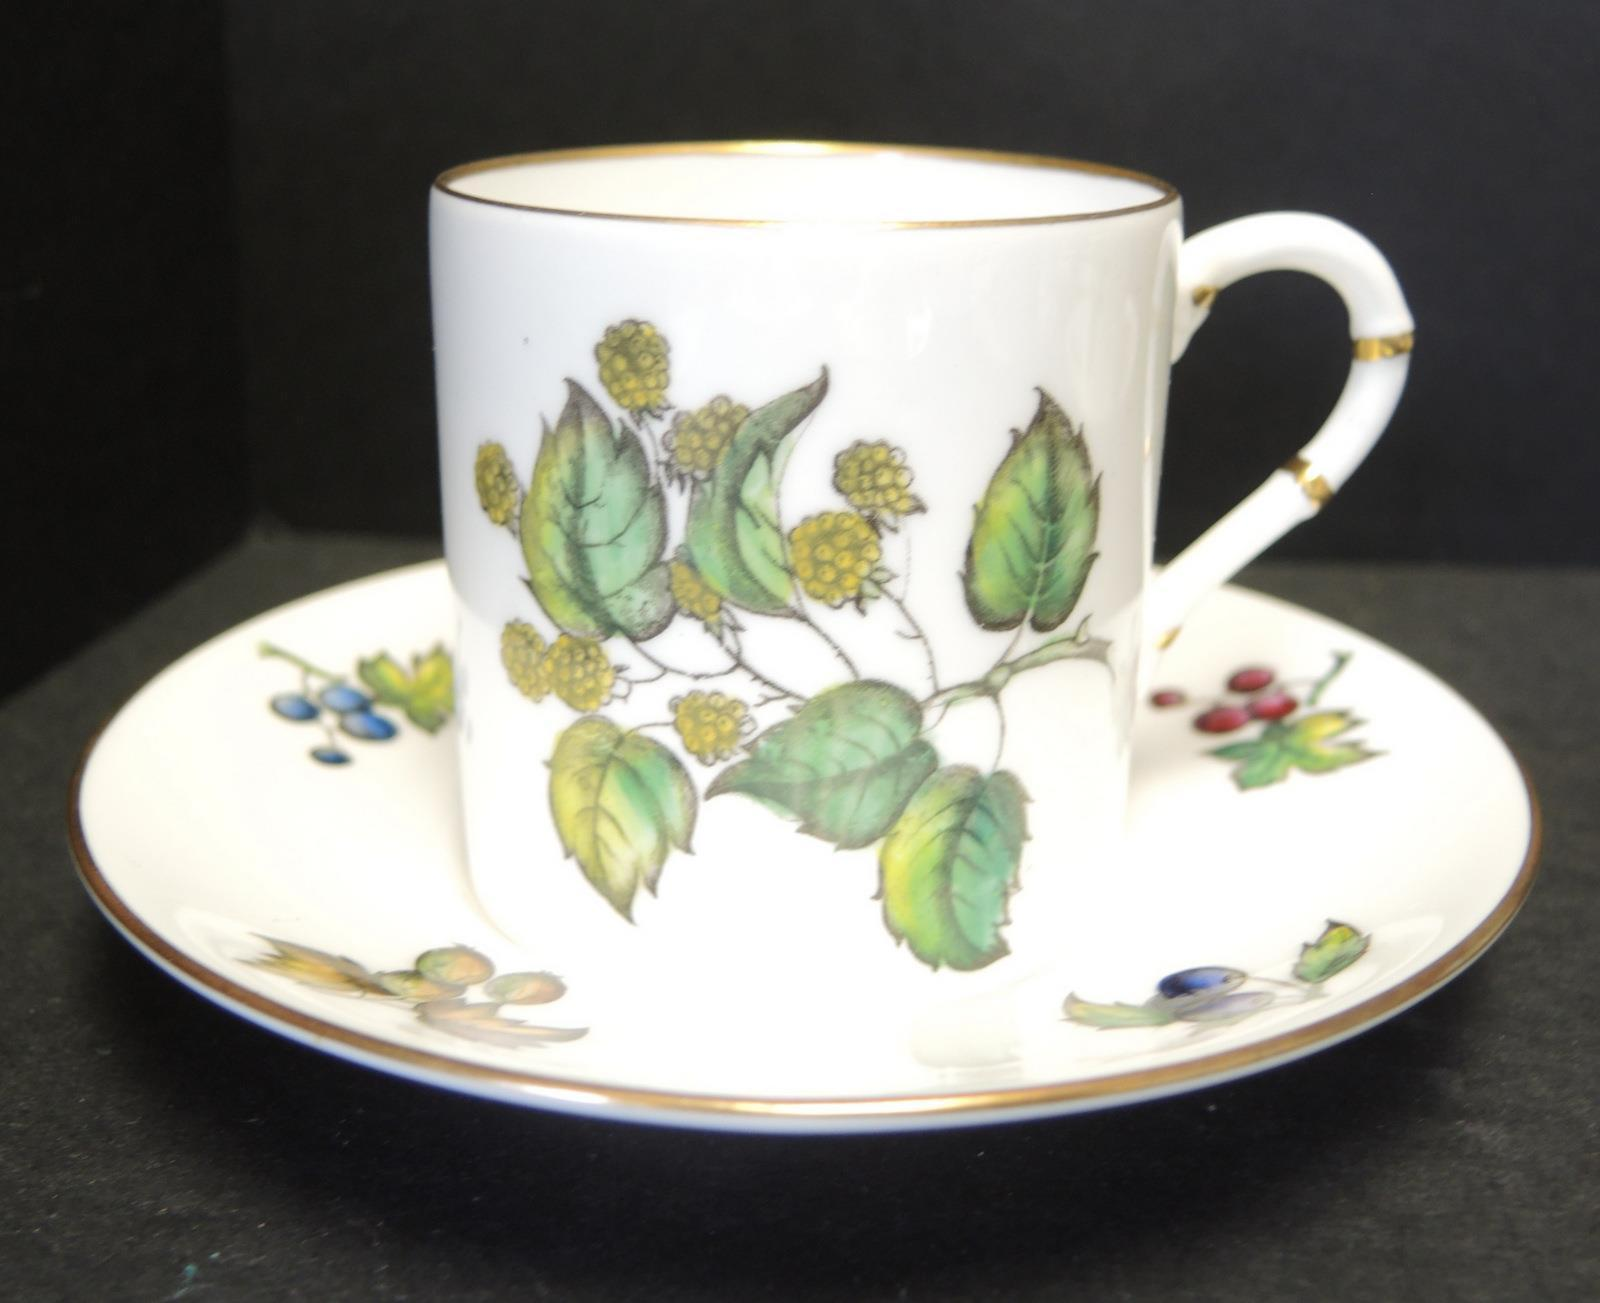 14 Royal Worcester Fruit Berries Demitasse Cups & Saucers #Z2623 Pattern